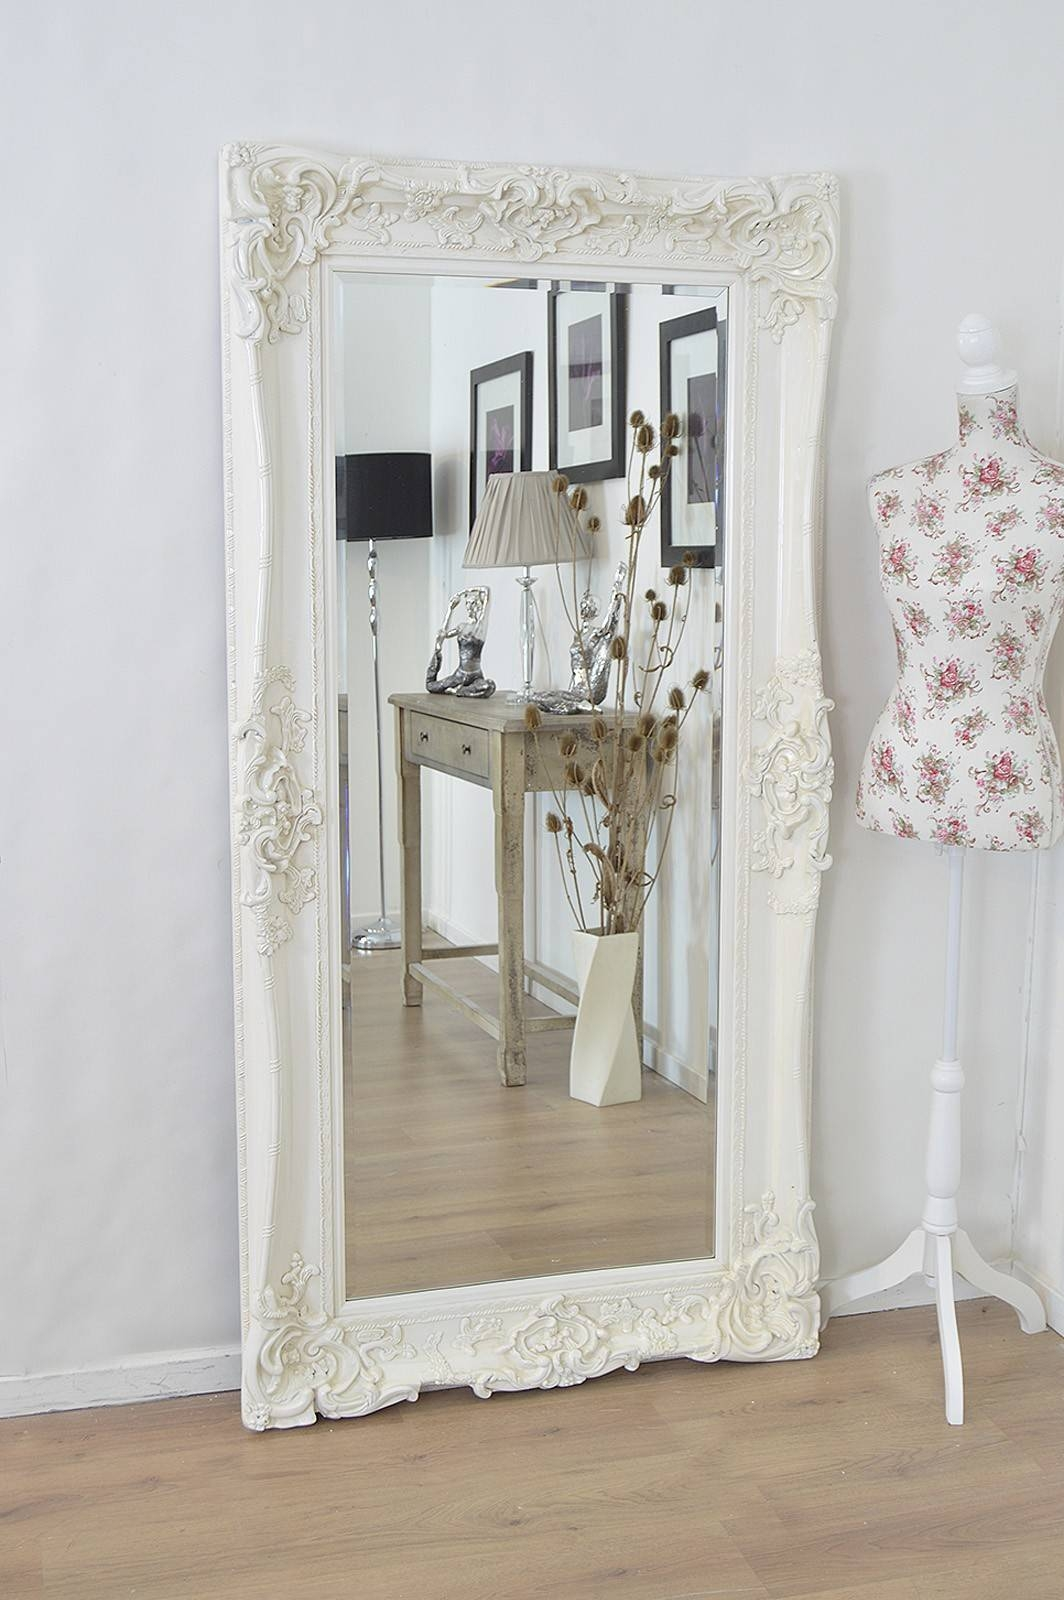 Shabby Chic Wall Mirror 40 Nice Decorating With Vintage Shabby with regard to White Ornate Mirrors (Image 18 of 25)